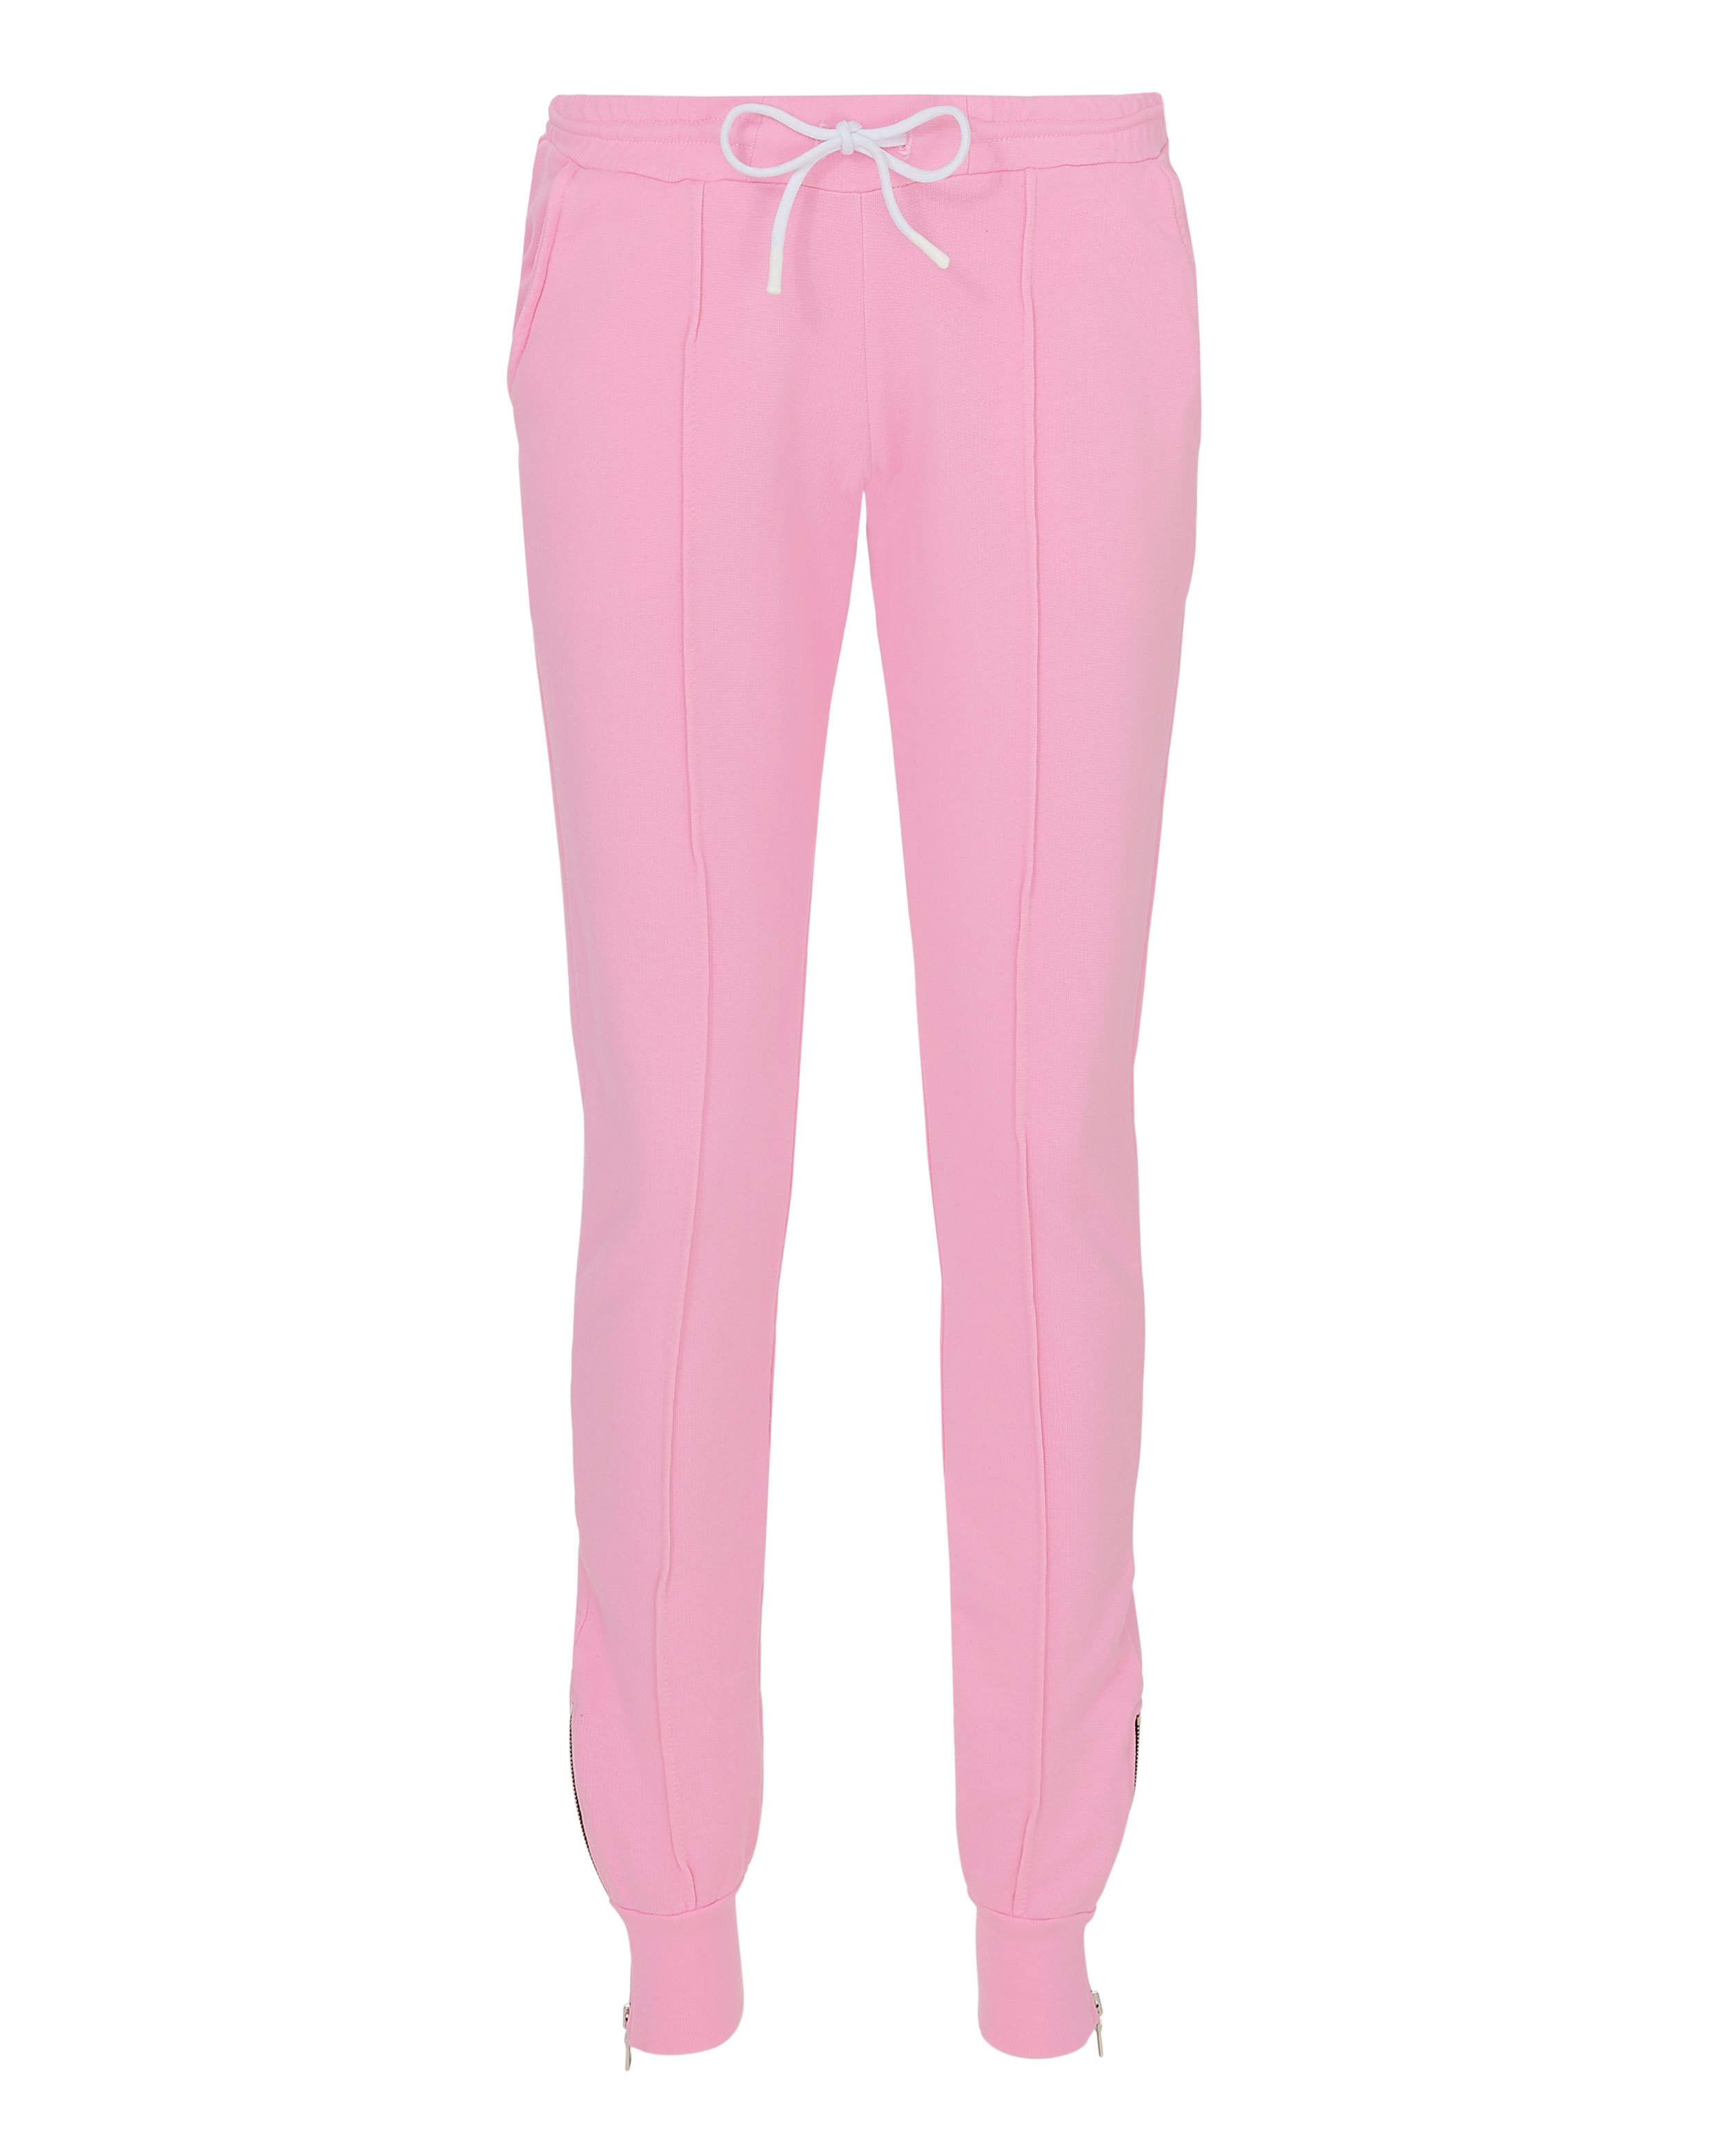 Milan Zip Detail Pink Jogger Pants by Cotton Citizen